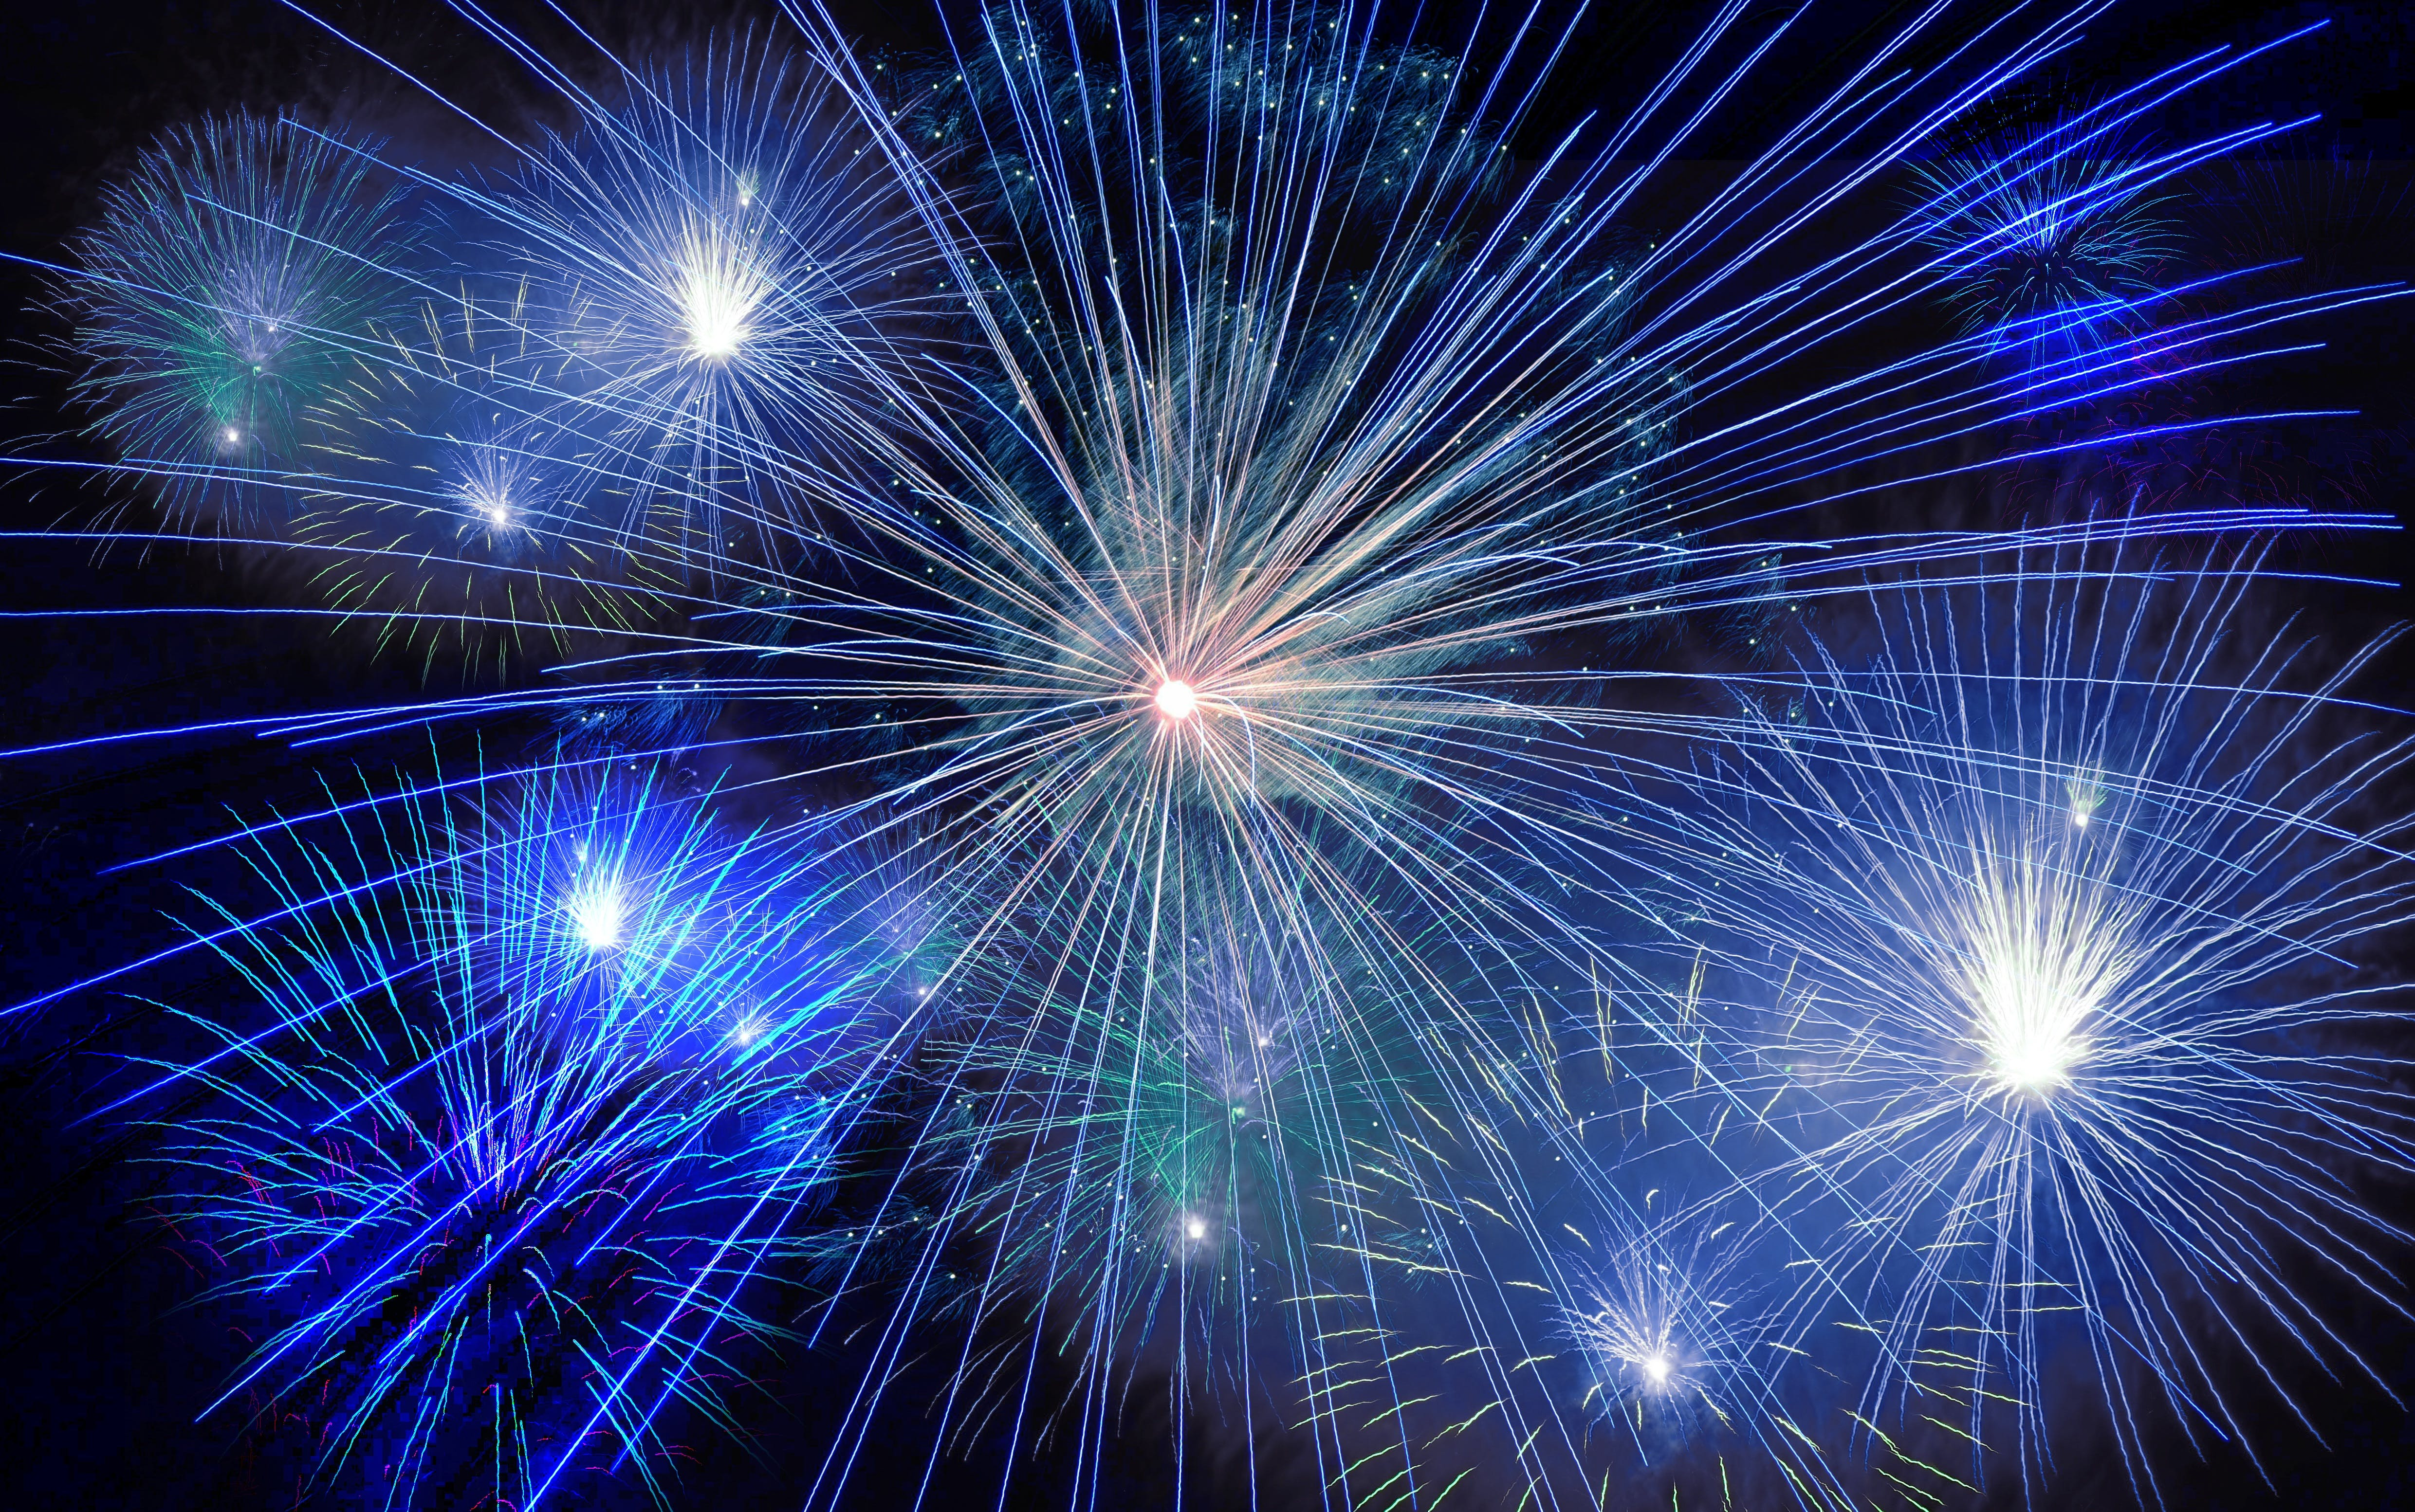 Timelapse Photography of Fireworks